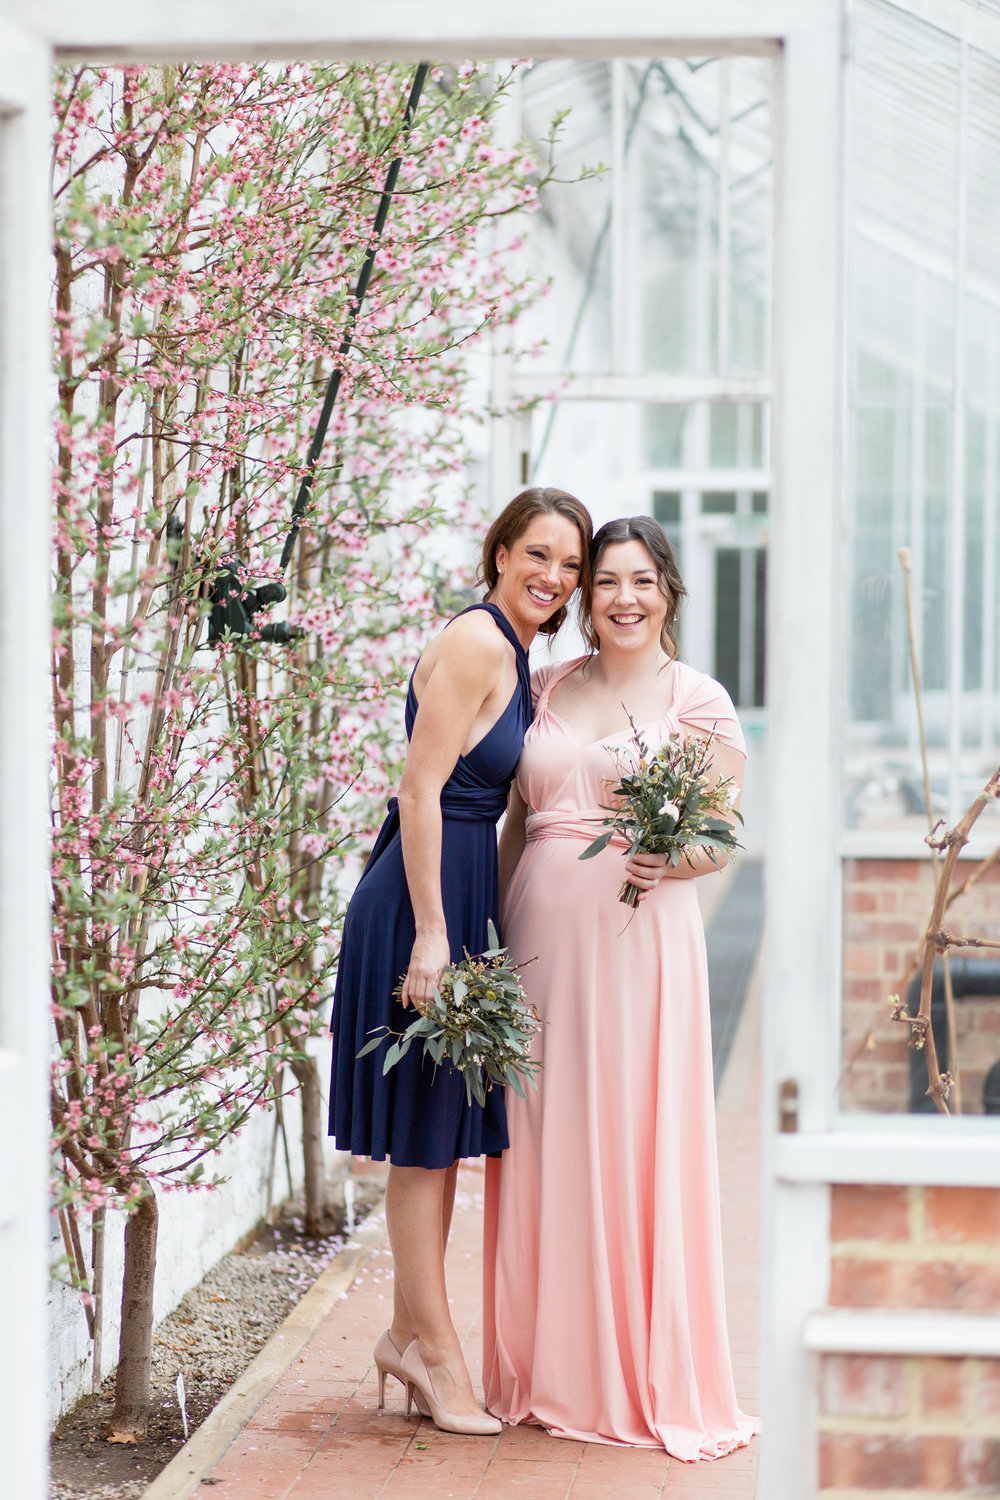 Eco Friendly Bridesmaids Dresses in soft pink and navy blue